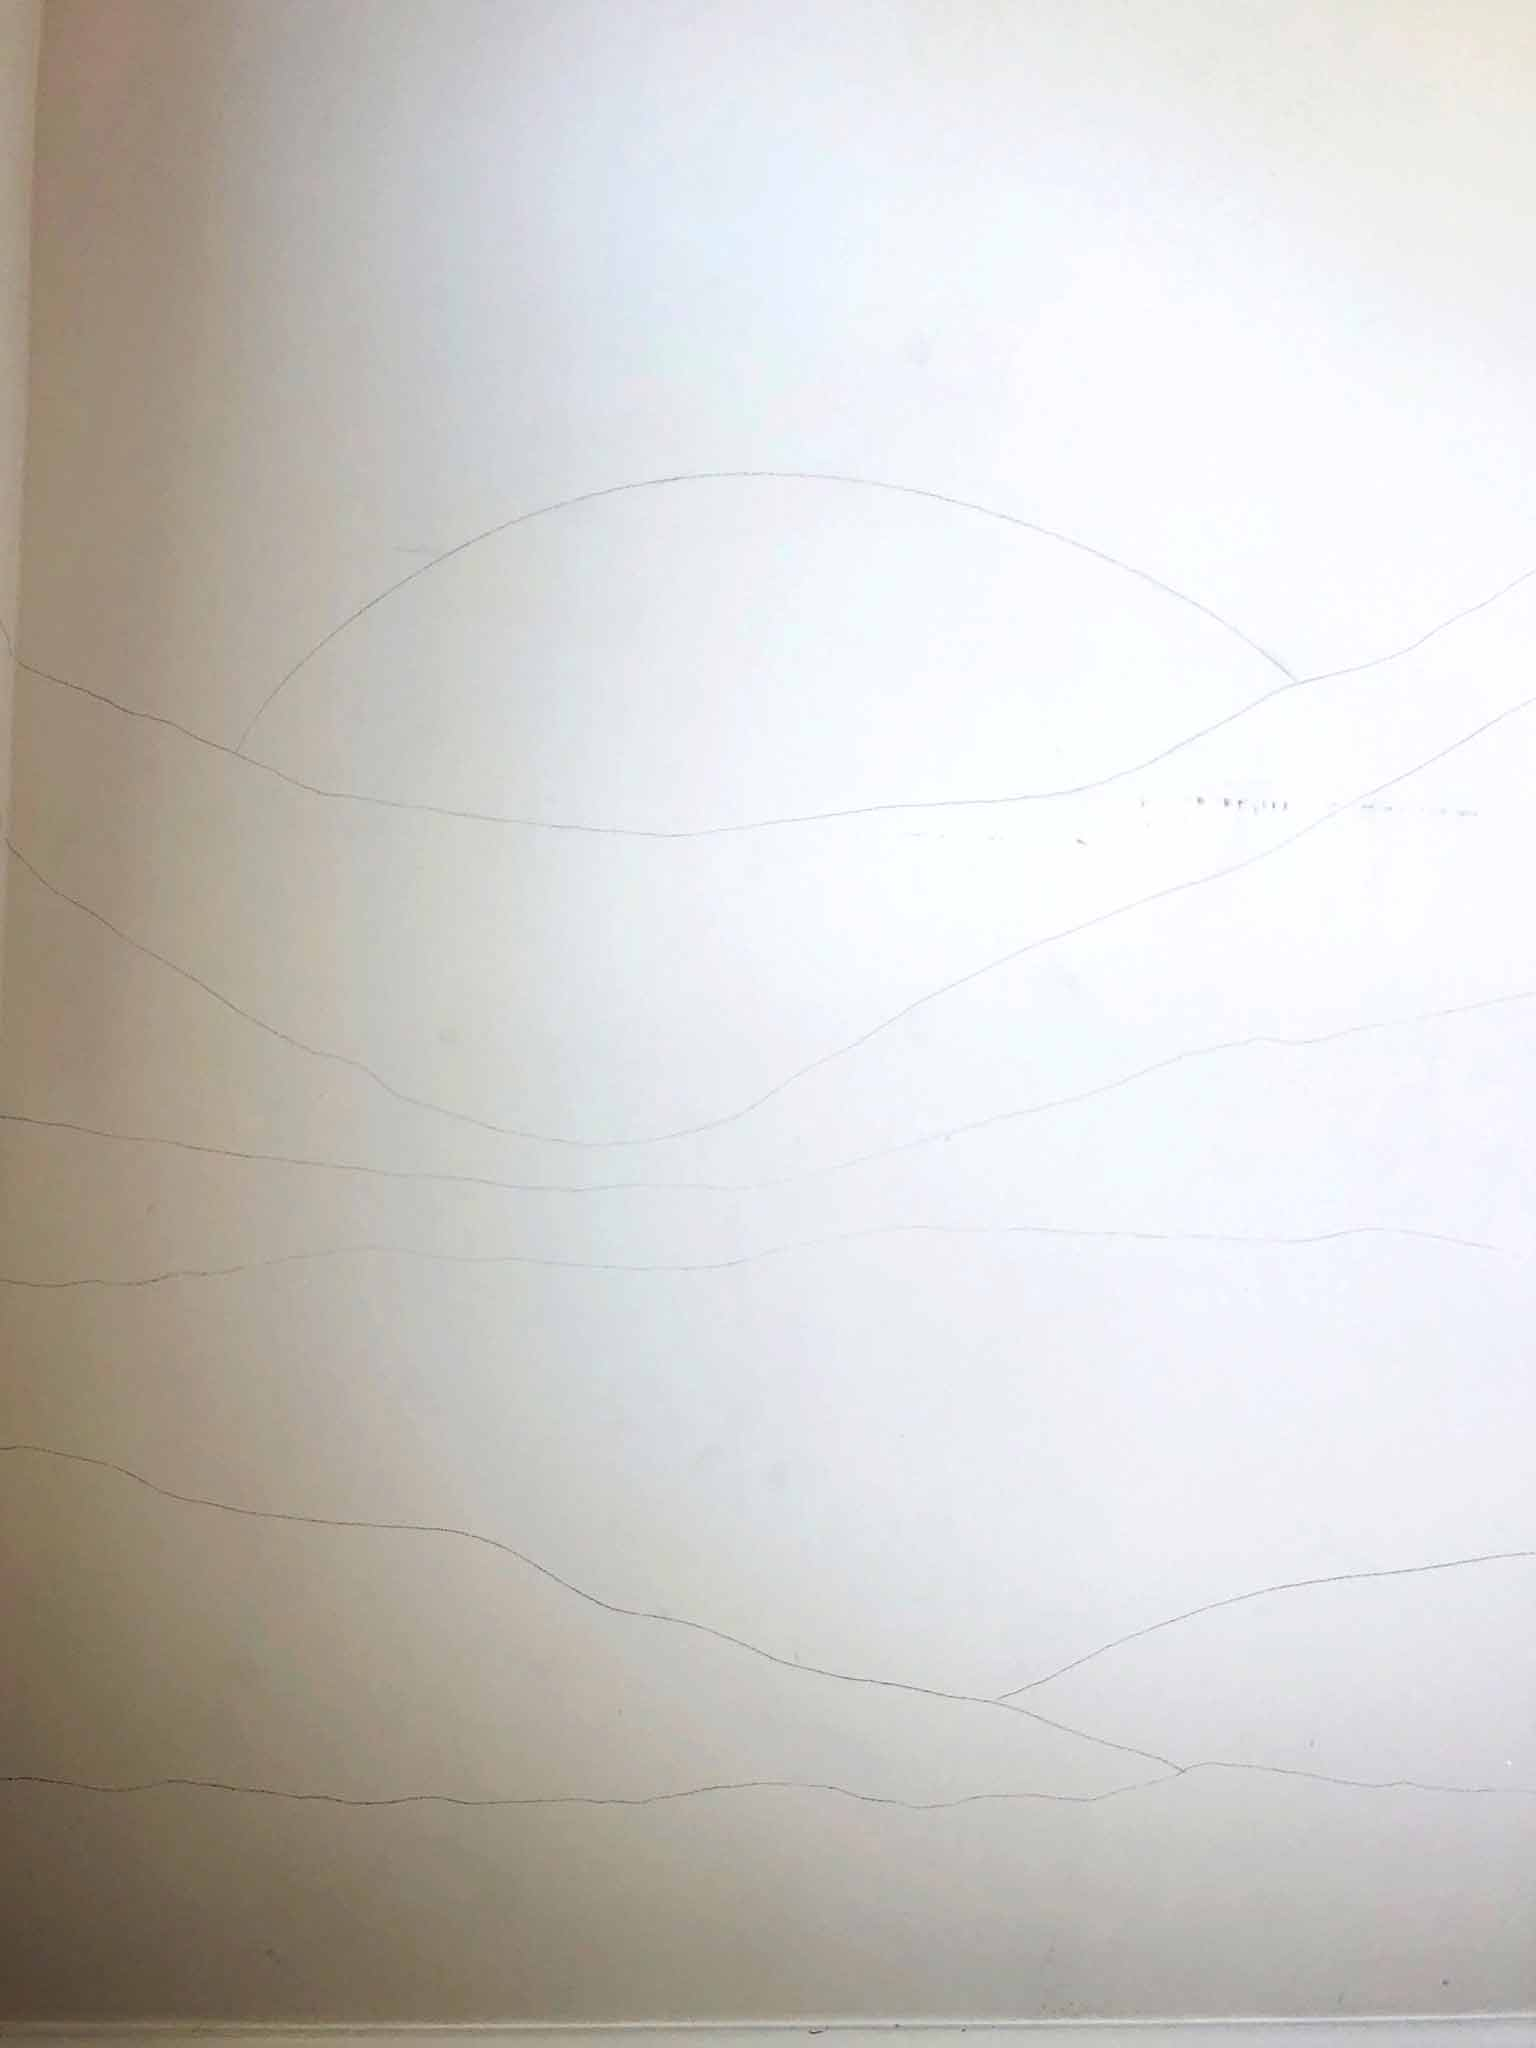 pencil sketch of wall mural